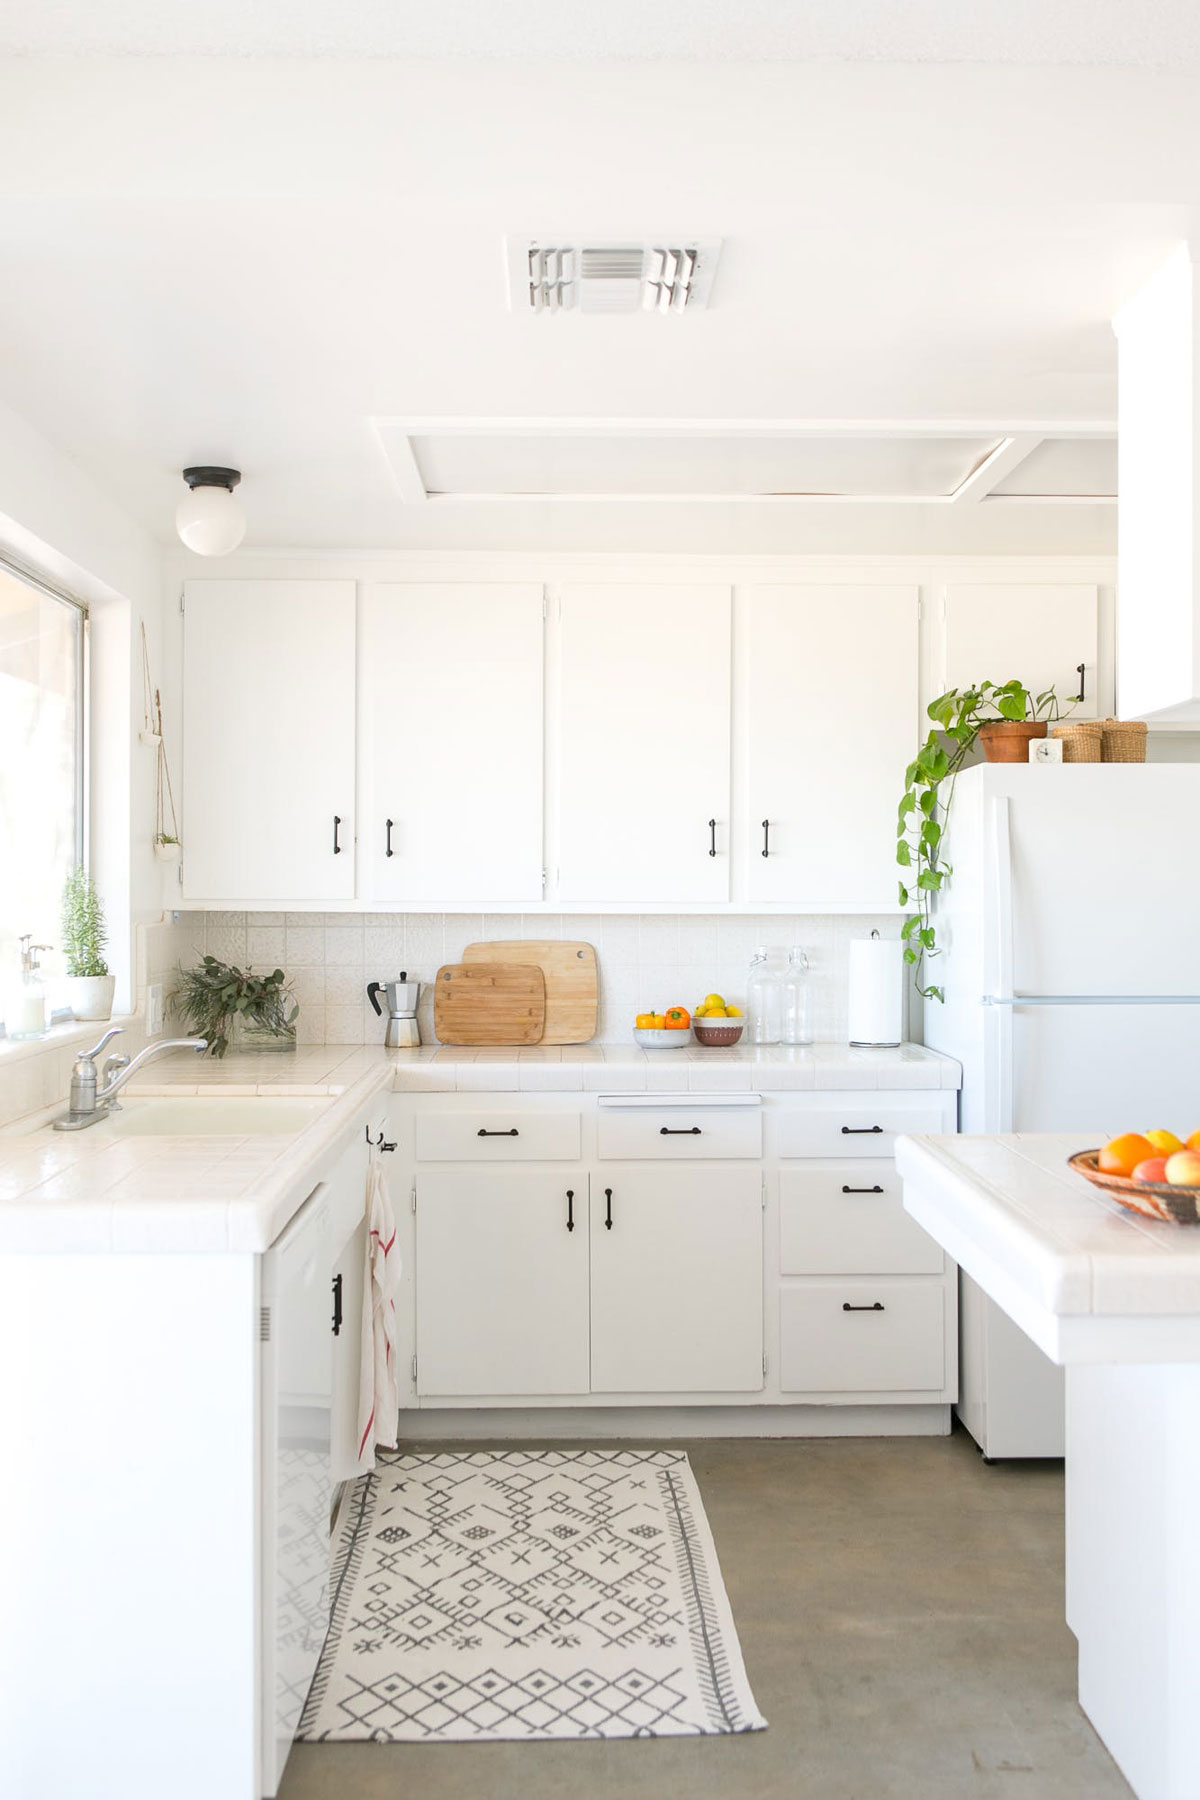 Desert Inspired Kitchen at Casa Joshua Tree Apartment Therapy Home Tour Photo Cred: Marisa Vitale